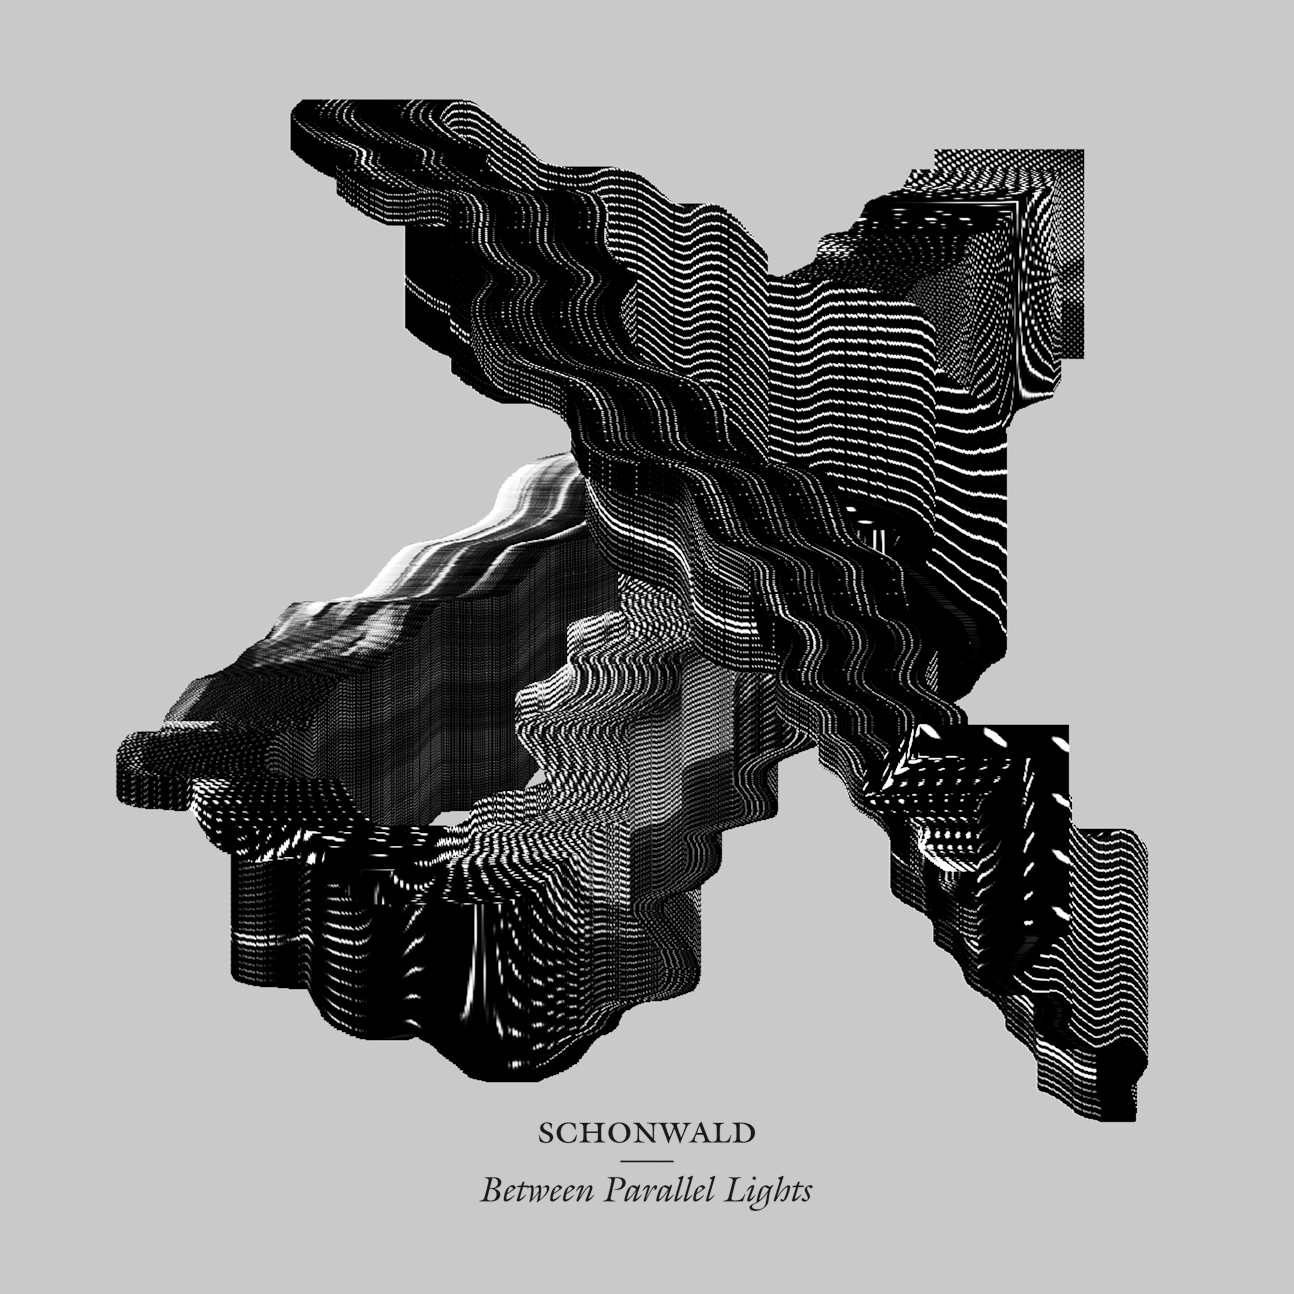 Schonwald - Between Parallel Lights (lp; 2015)